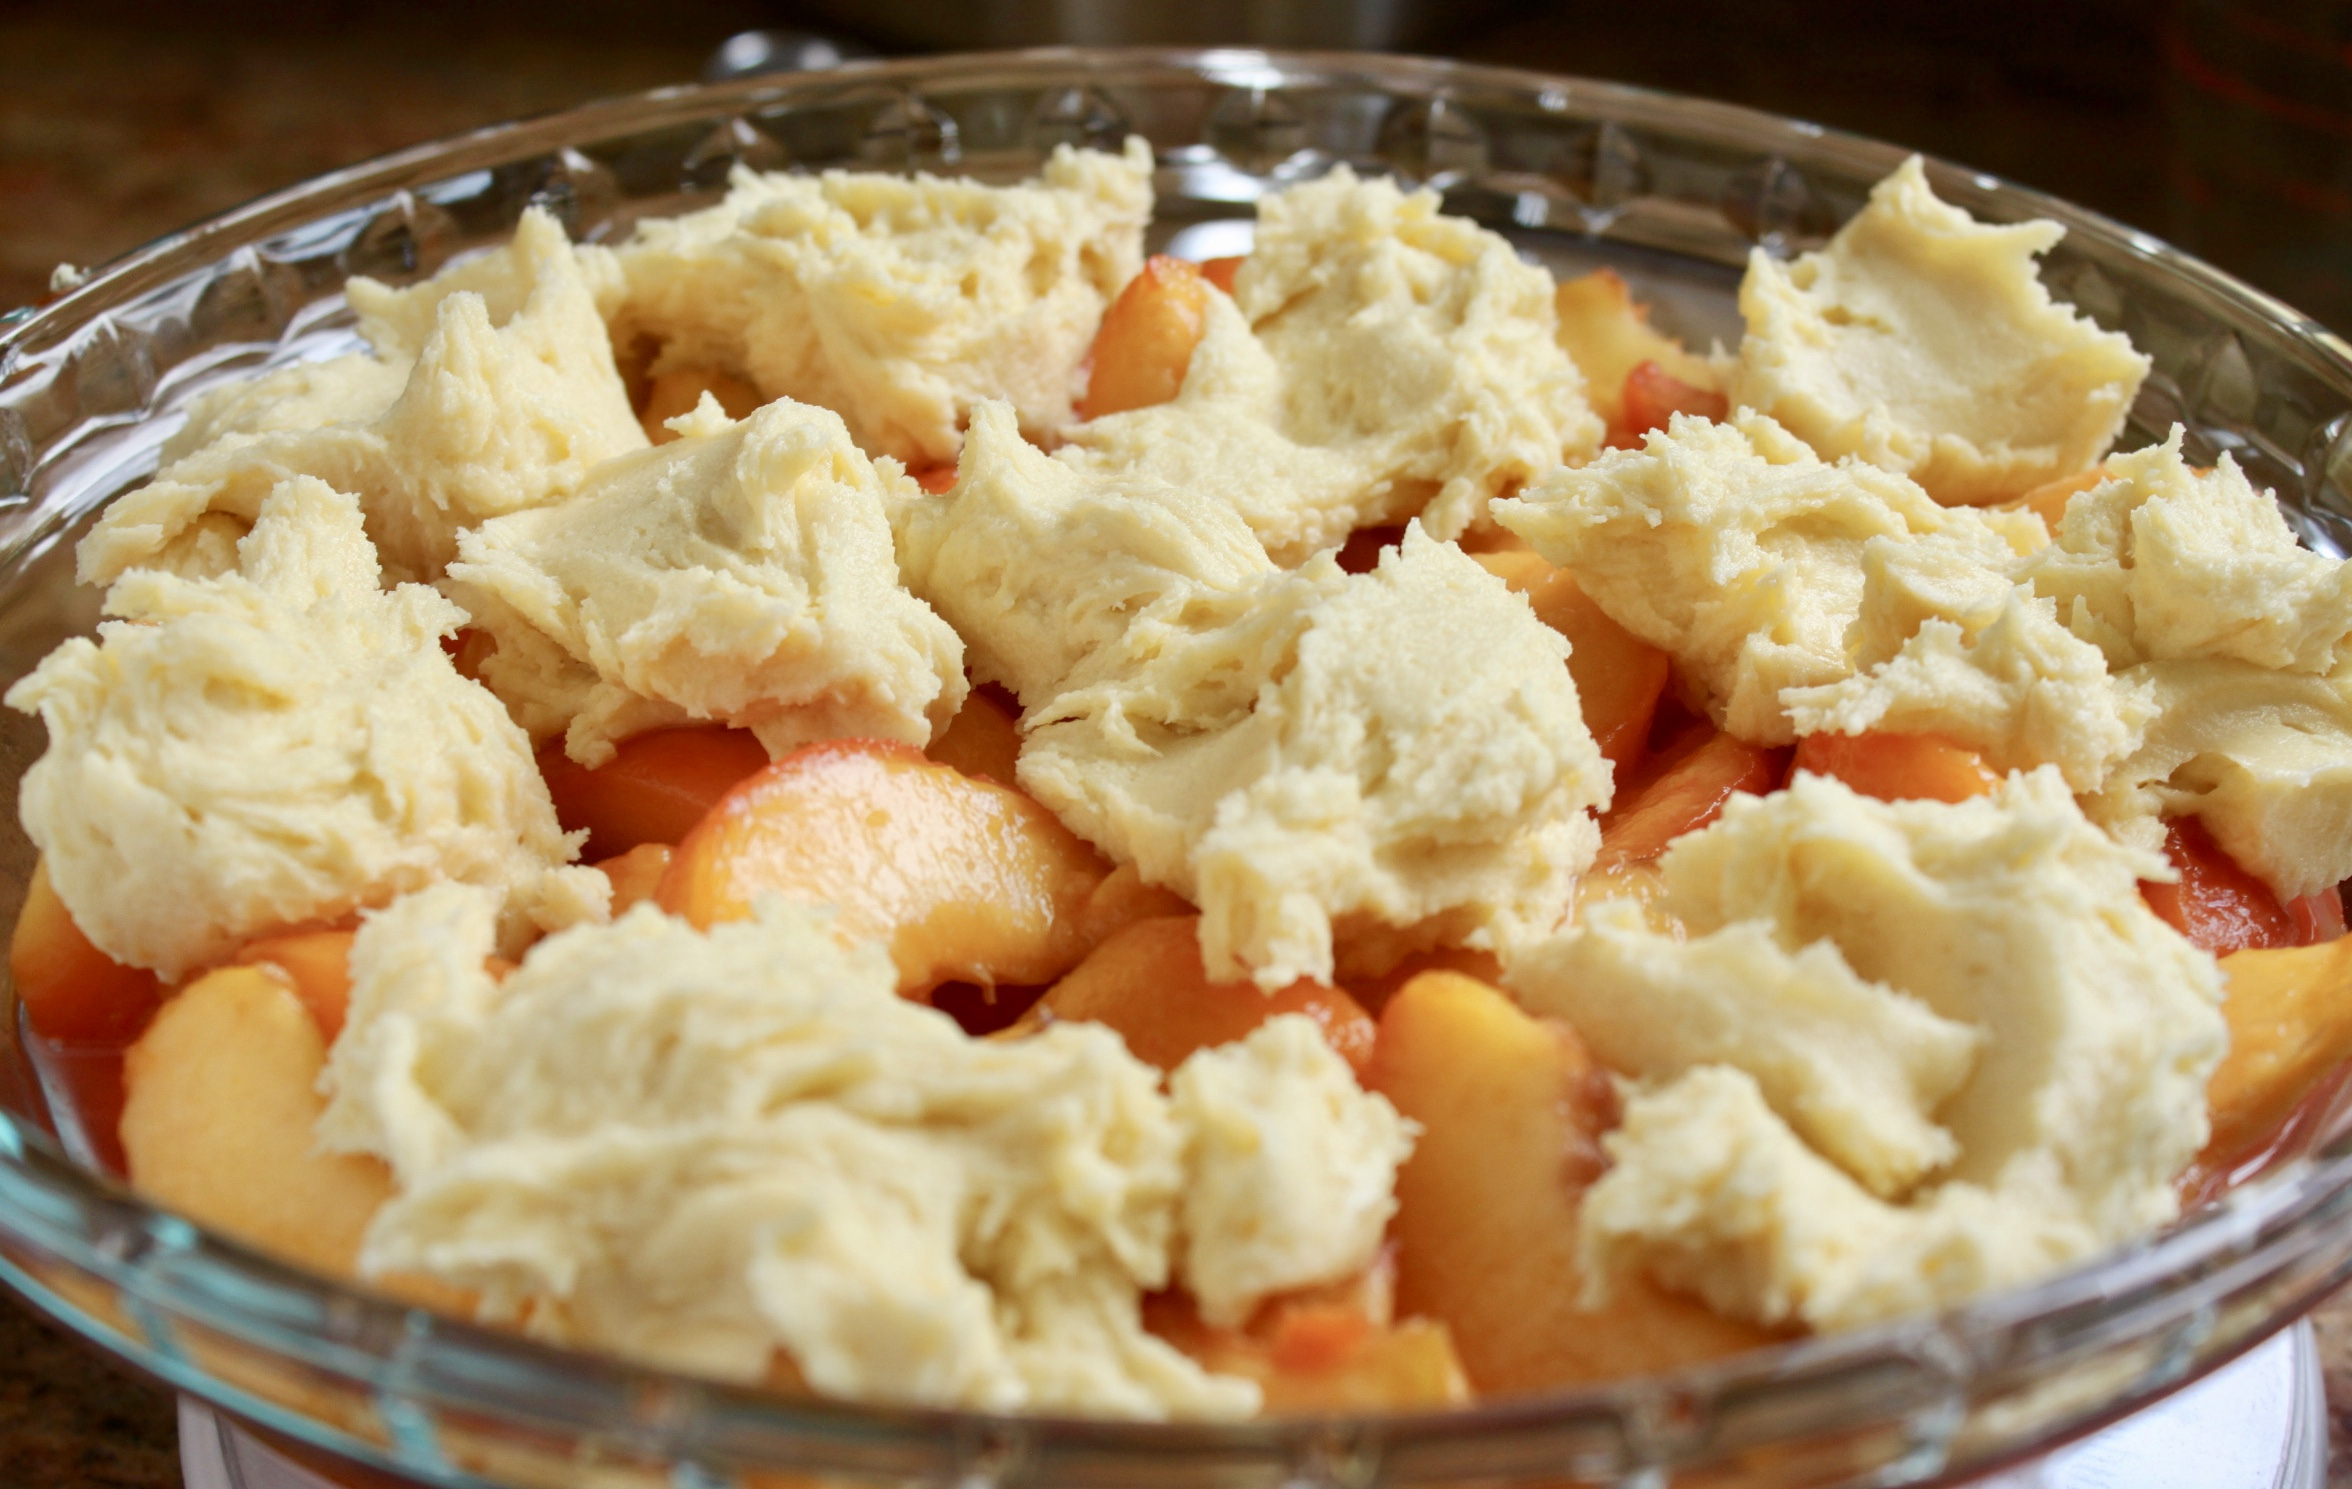 dough on top of peaches in pie dish